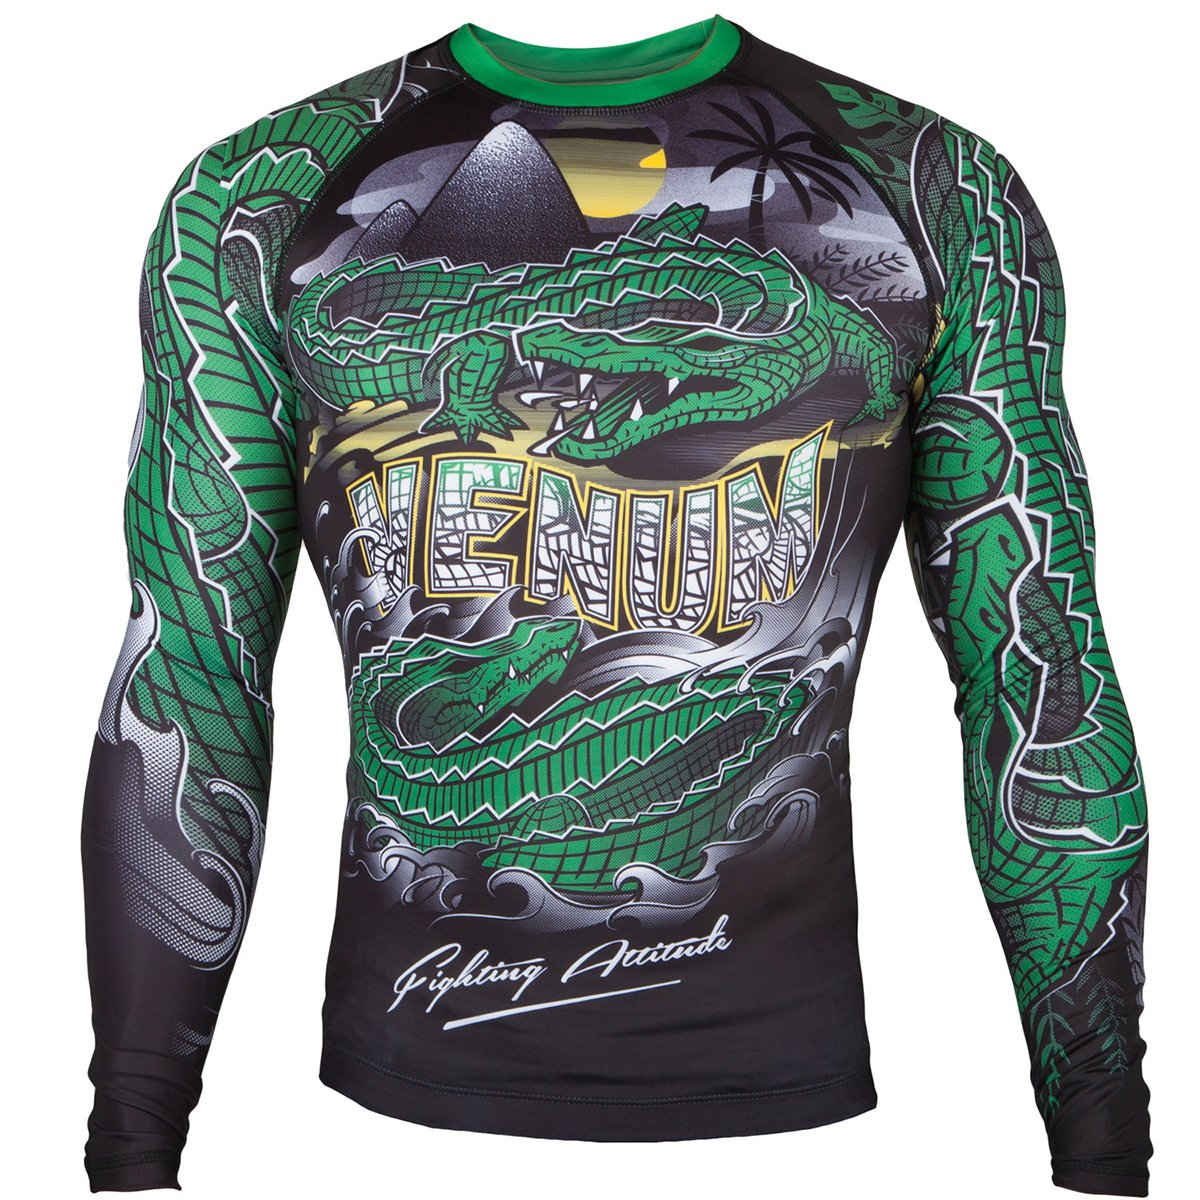 Venum Crocodile Dry Tech Long Sleeve MMA Rashguard - Small - Black/Green by Venum